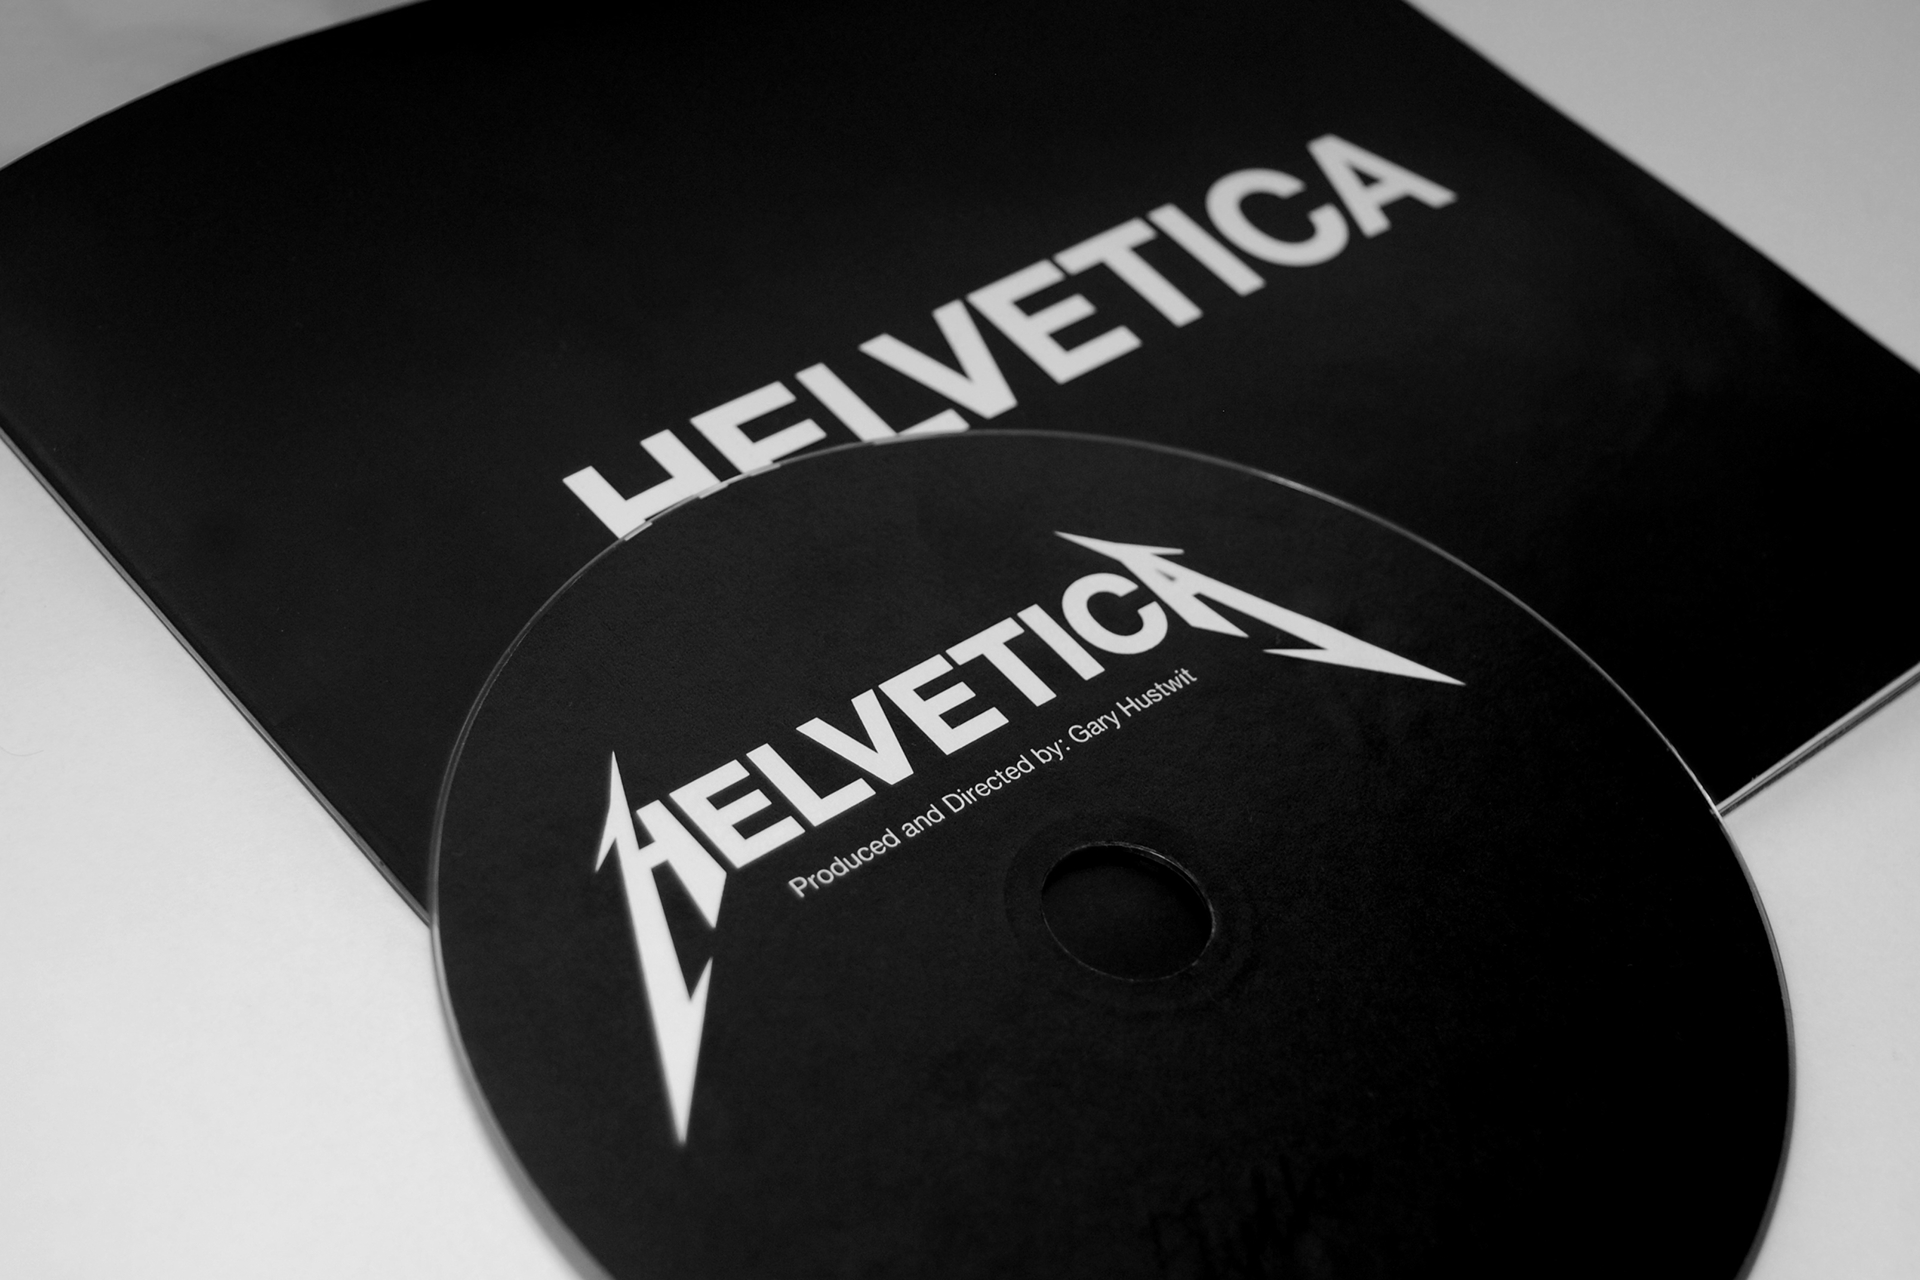 Promotion of the Helvetica typeface